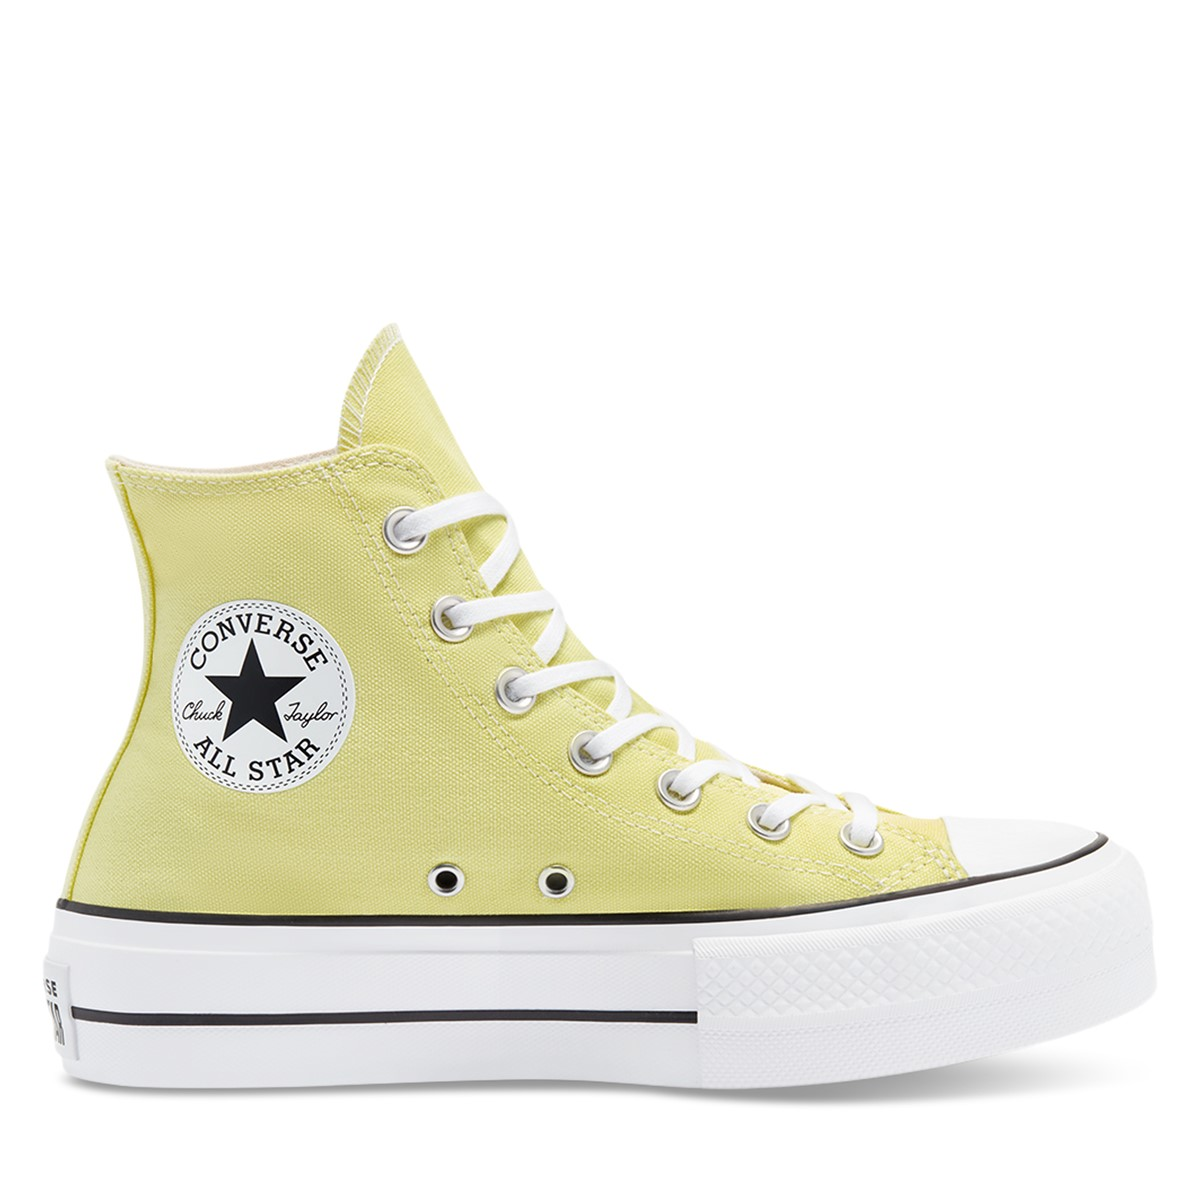 Women's Chuck Taylor Lift Hi Sneakers in Yellow